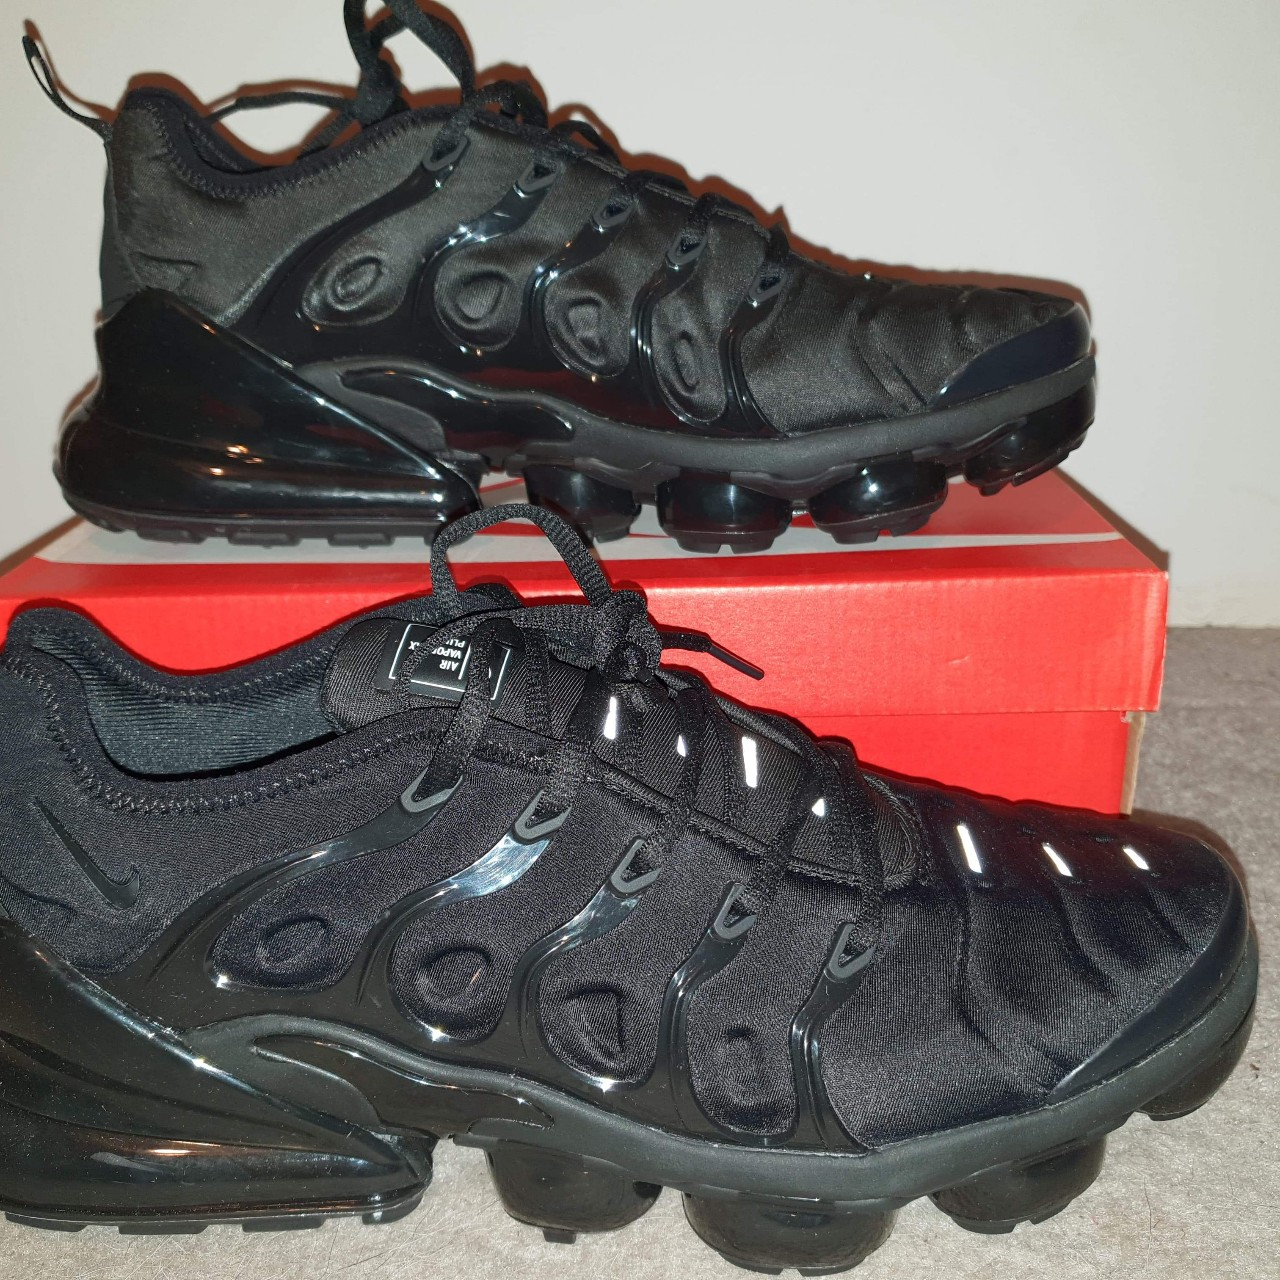 newest 49738 eaf7a Brand new Nike tn vm 270. Size 10 uk come with the... - Depop